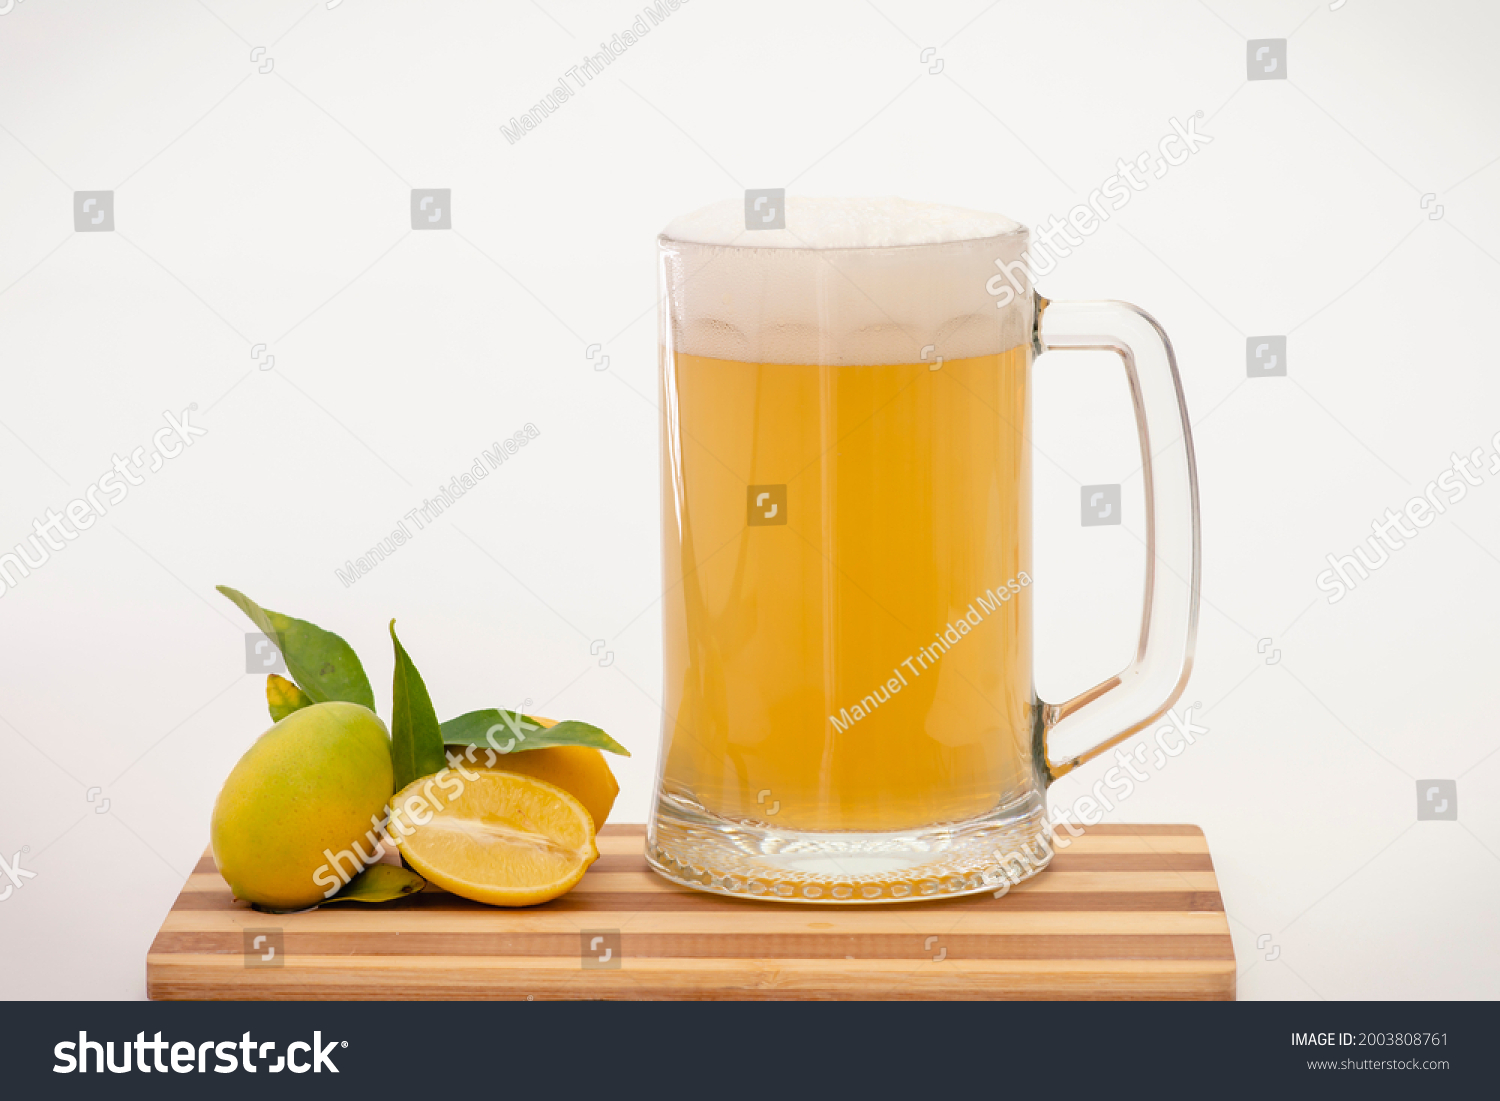 Beer mug with lemon soda and lemons with leaves, on a wooden board and white background